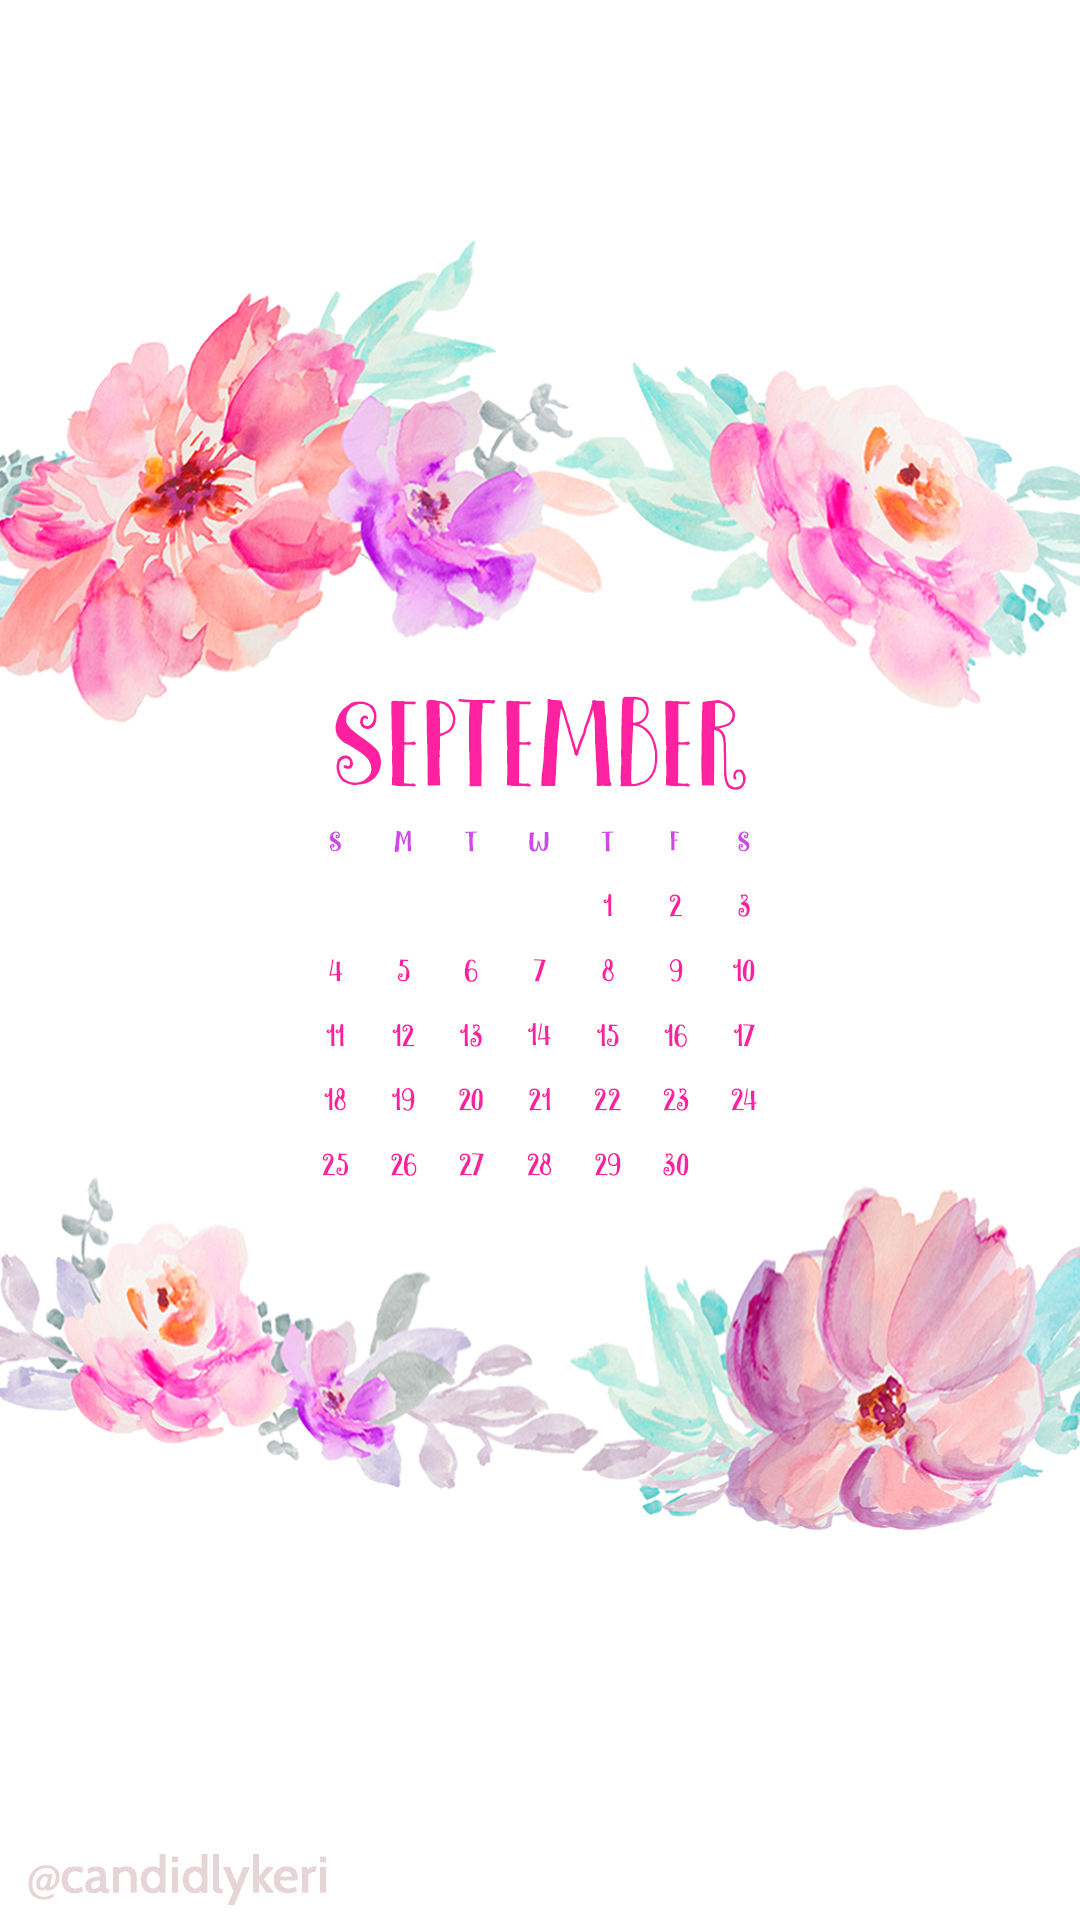 Flower-crown-watercolor-September-calendar-you-can-download-for-free-on-the-blog-For-wallpaper-wp3605644